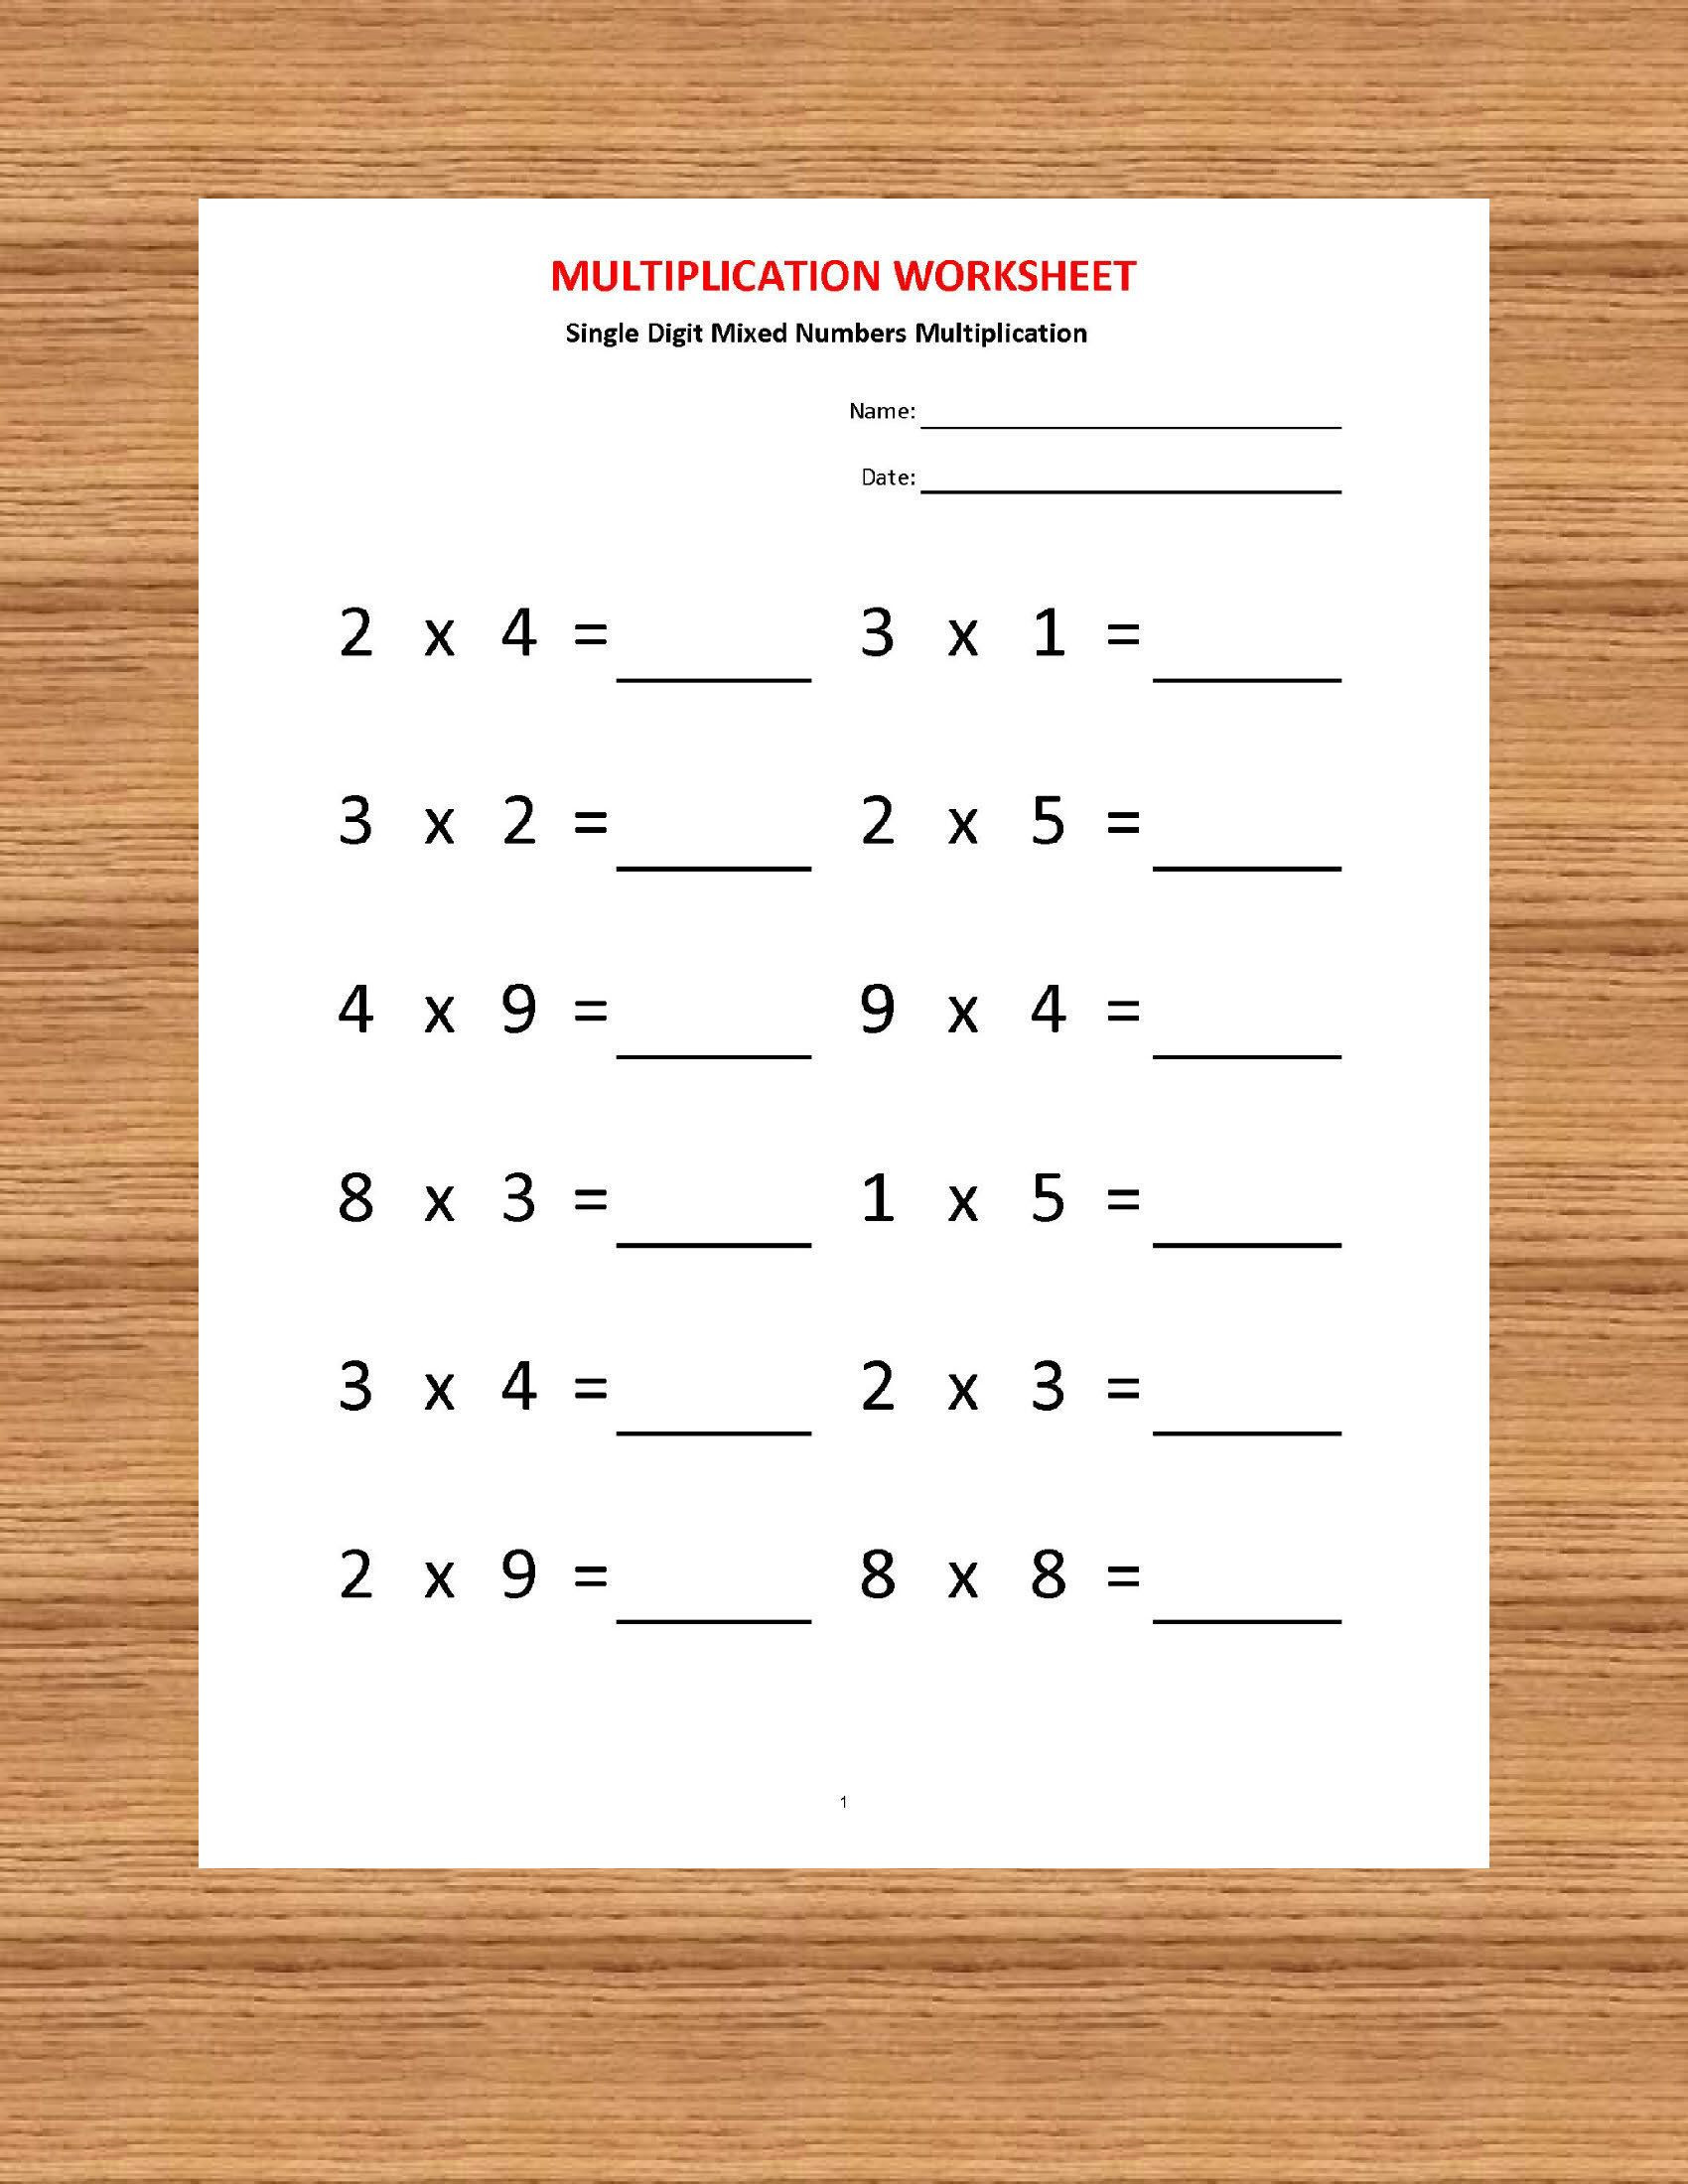 Multiplication Worksheets Grade 4 Pdf Multiplication Worksheets Printable Worksheets